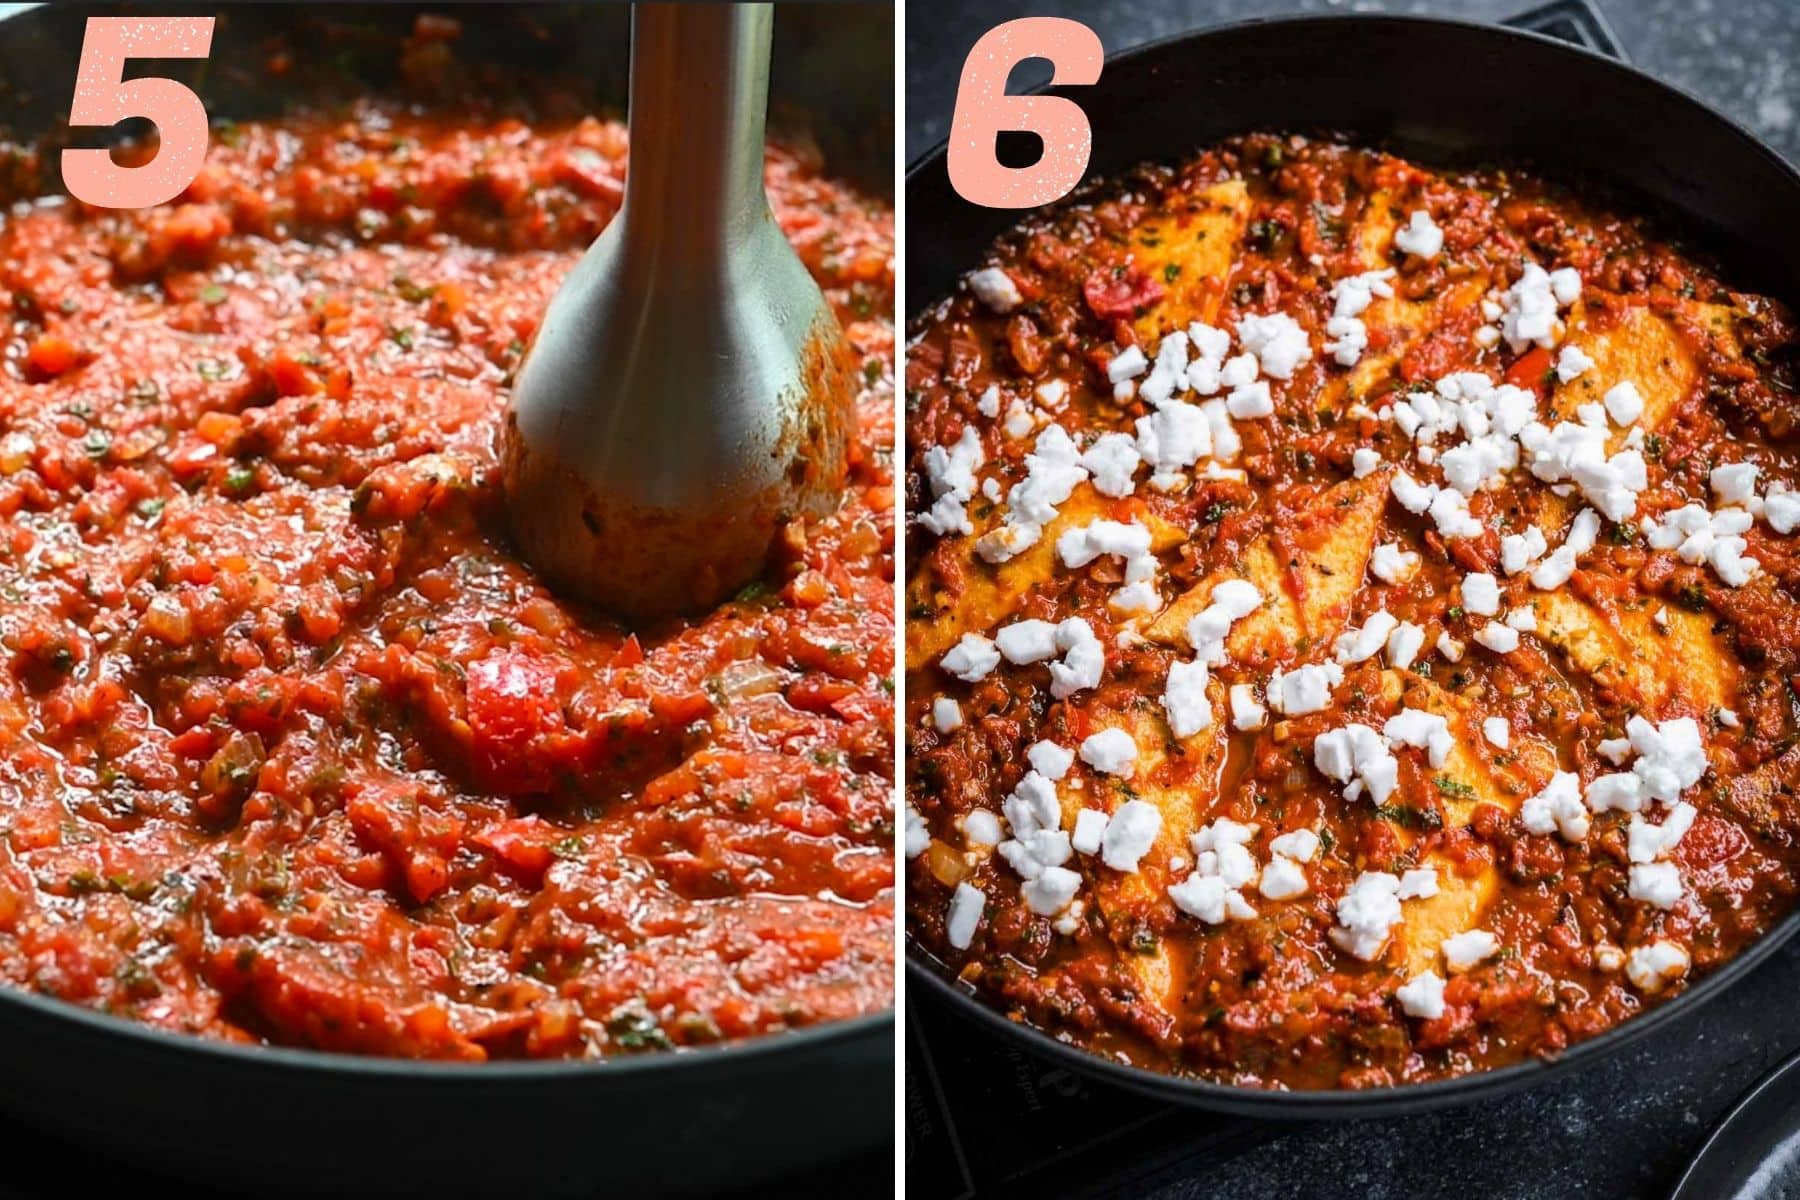 On the left: blending tomato sauce with an immersion blender. On the right: tofu shakshuka after coming out of the oven.